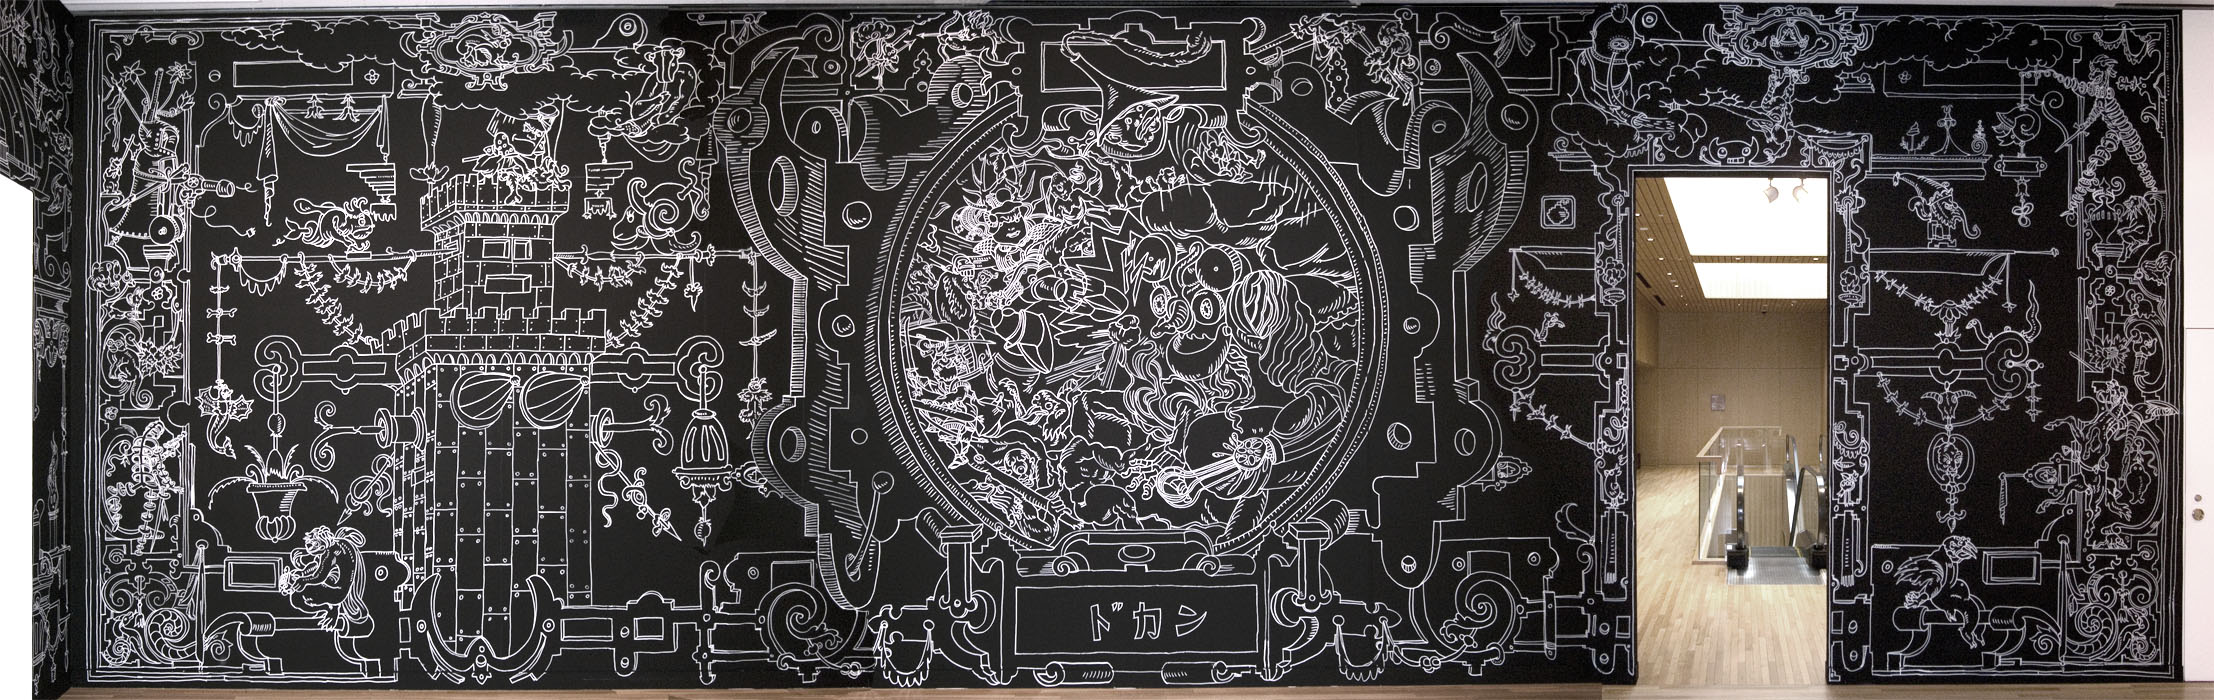 : Roof Gardens - 11 iron age, wall drawing, marker ink, 13x4m